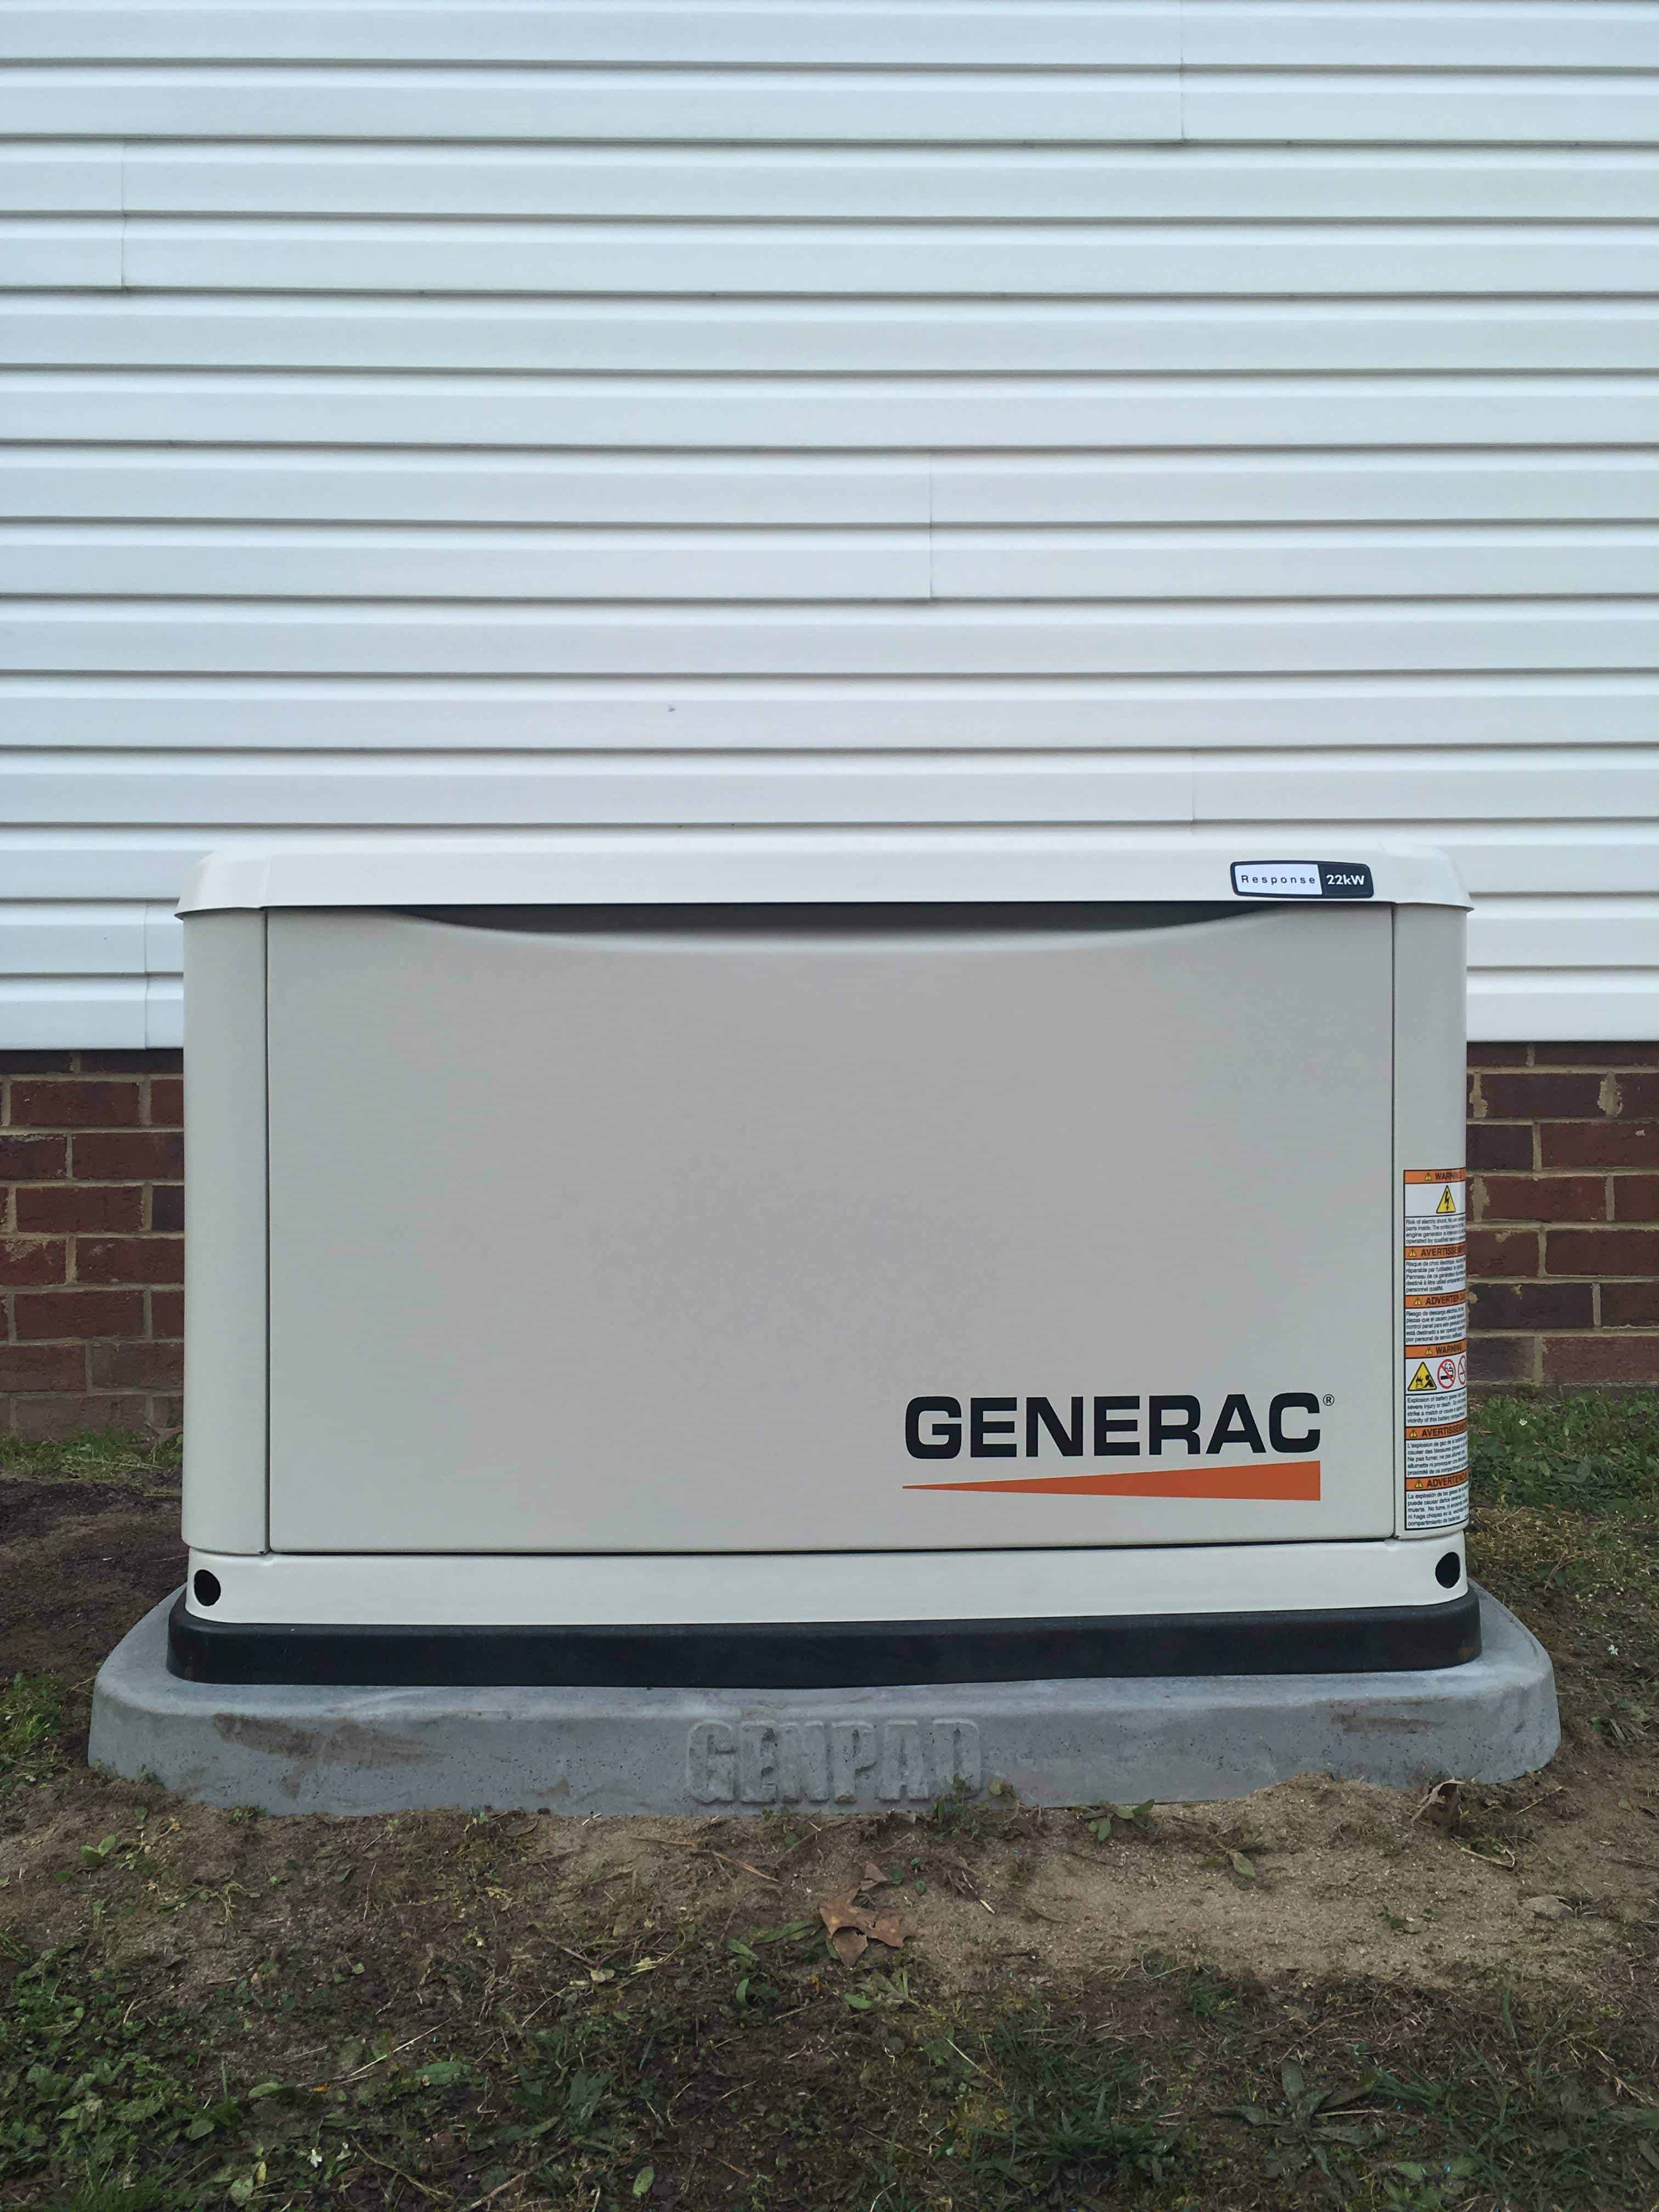 Generac Automatic Standby Generator Prince George County